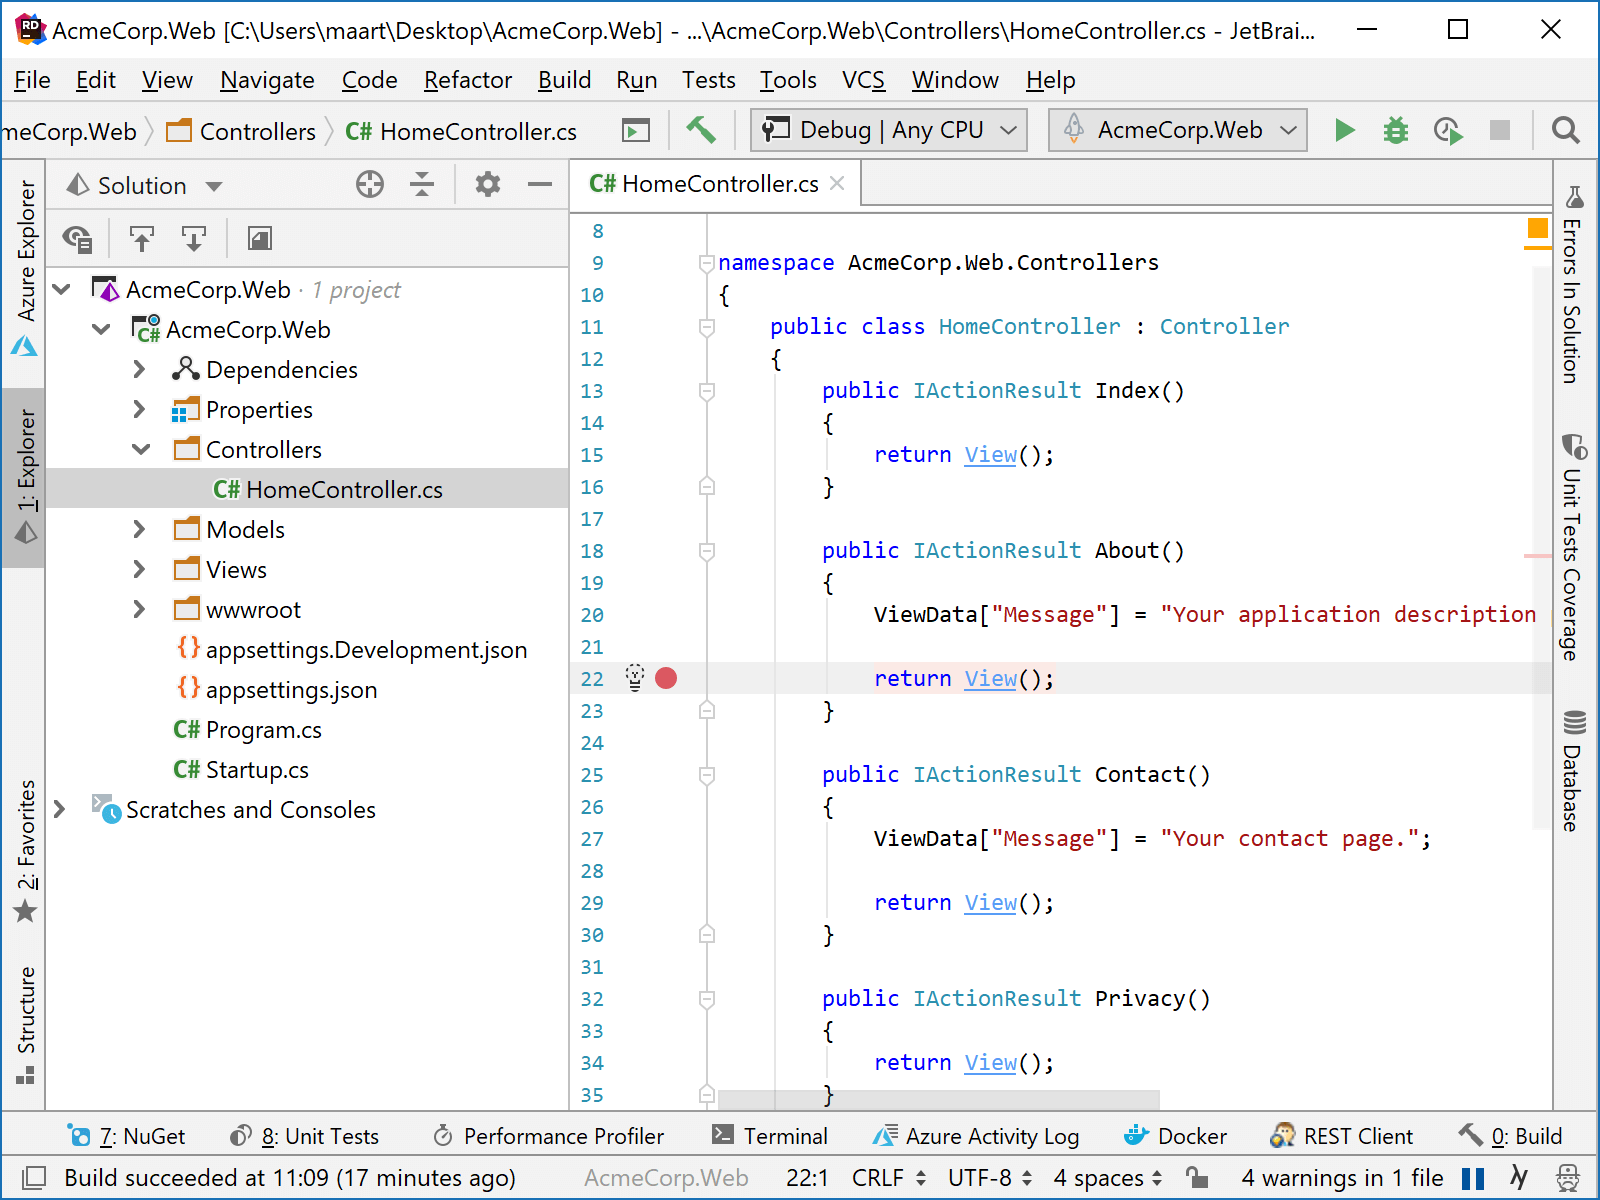 Attach debugger to remote process in Rider and inspect variables